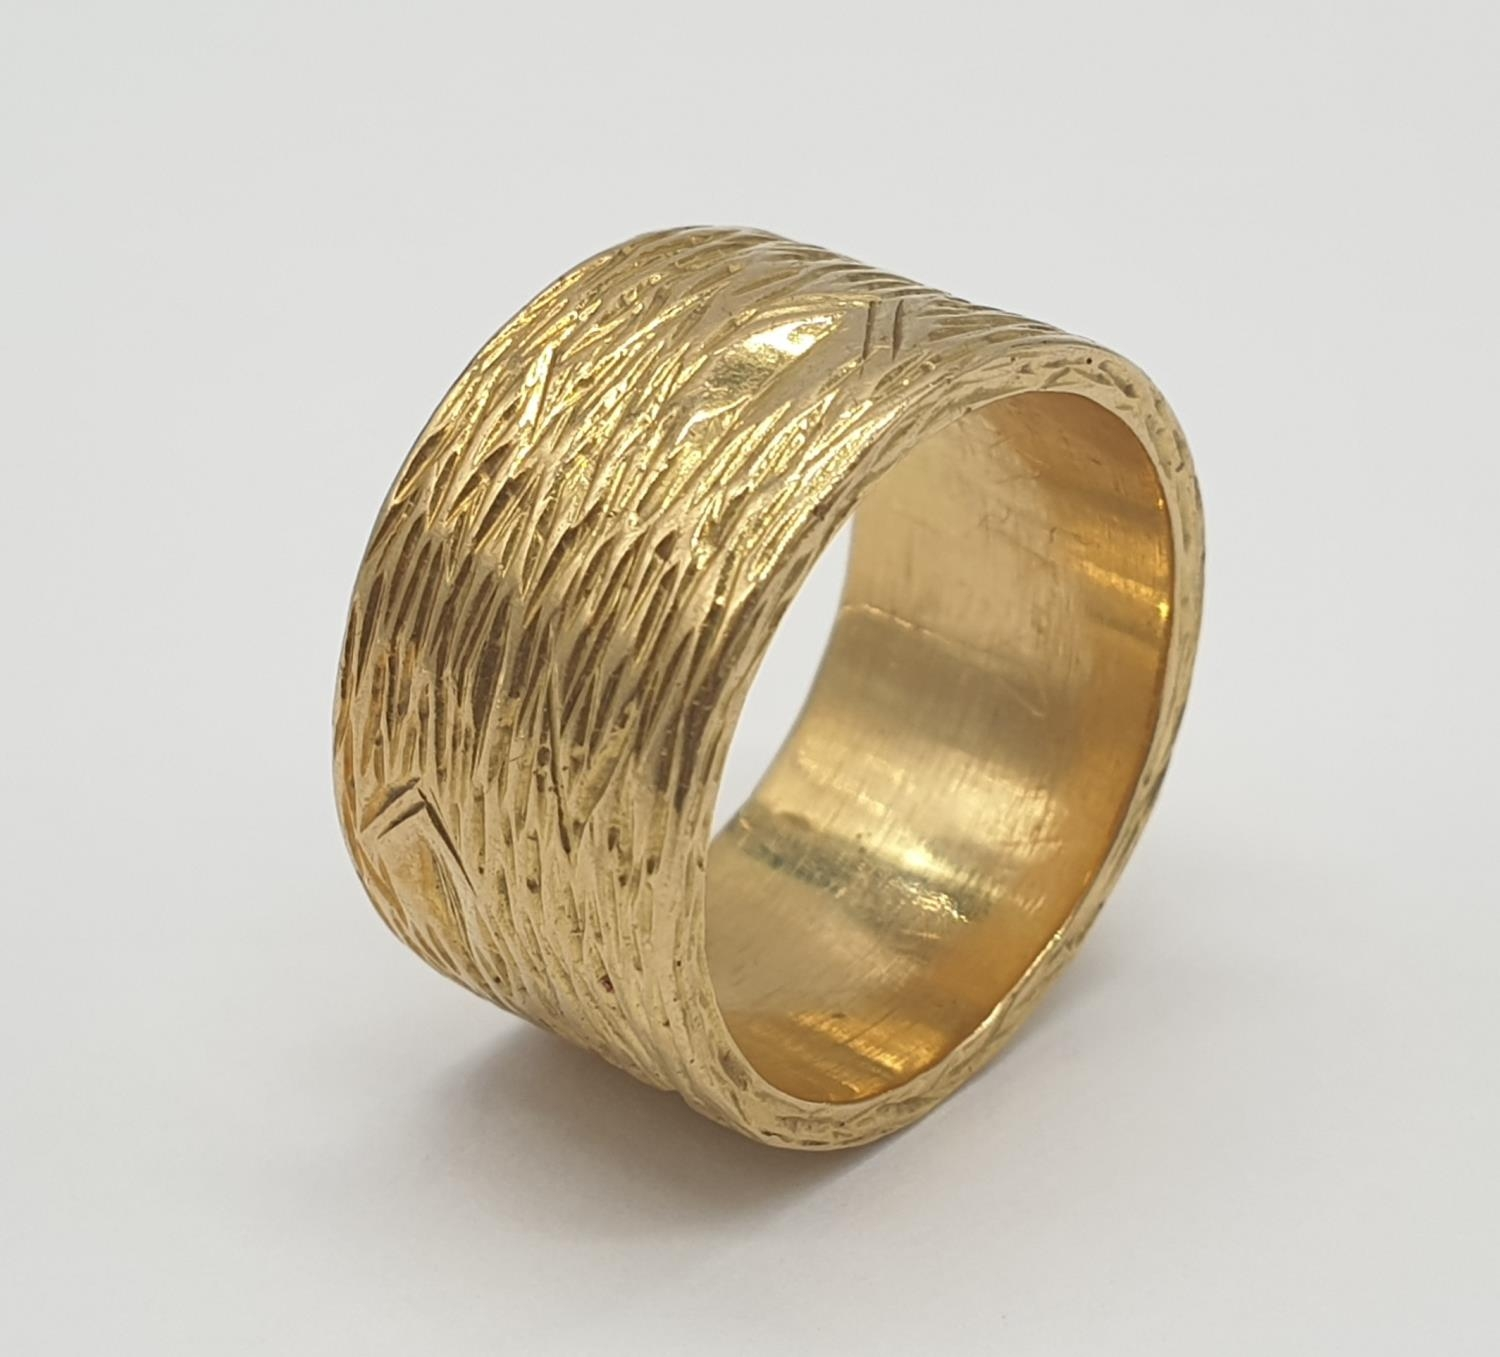 18ct gold wide band ring with grained pattern, weight 14.4g and size O